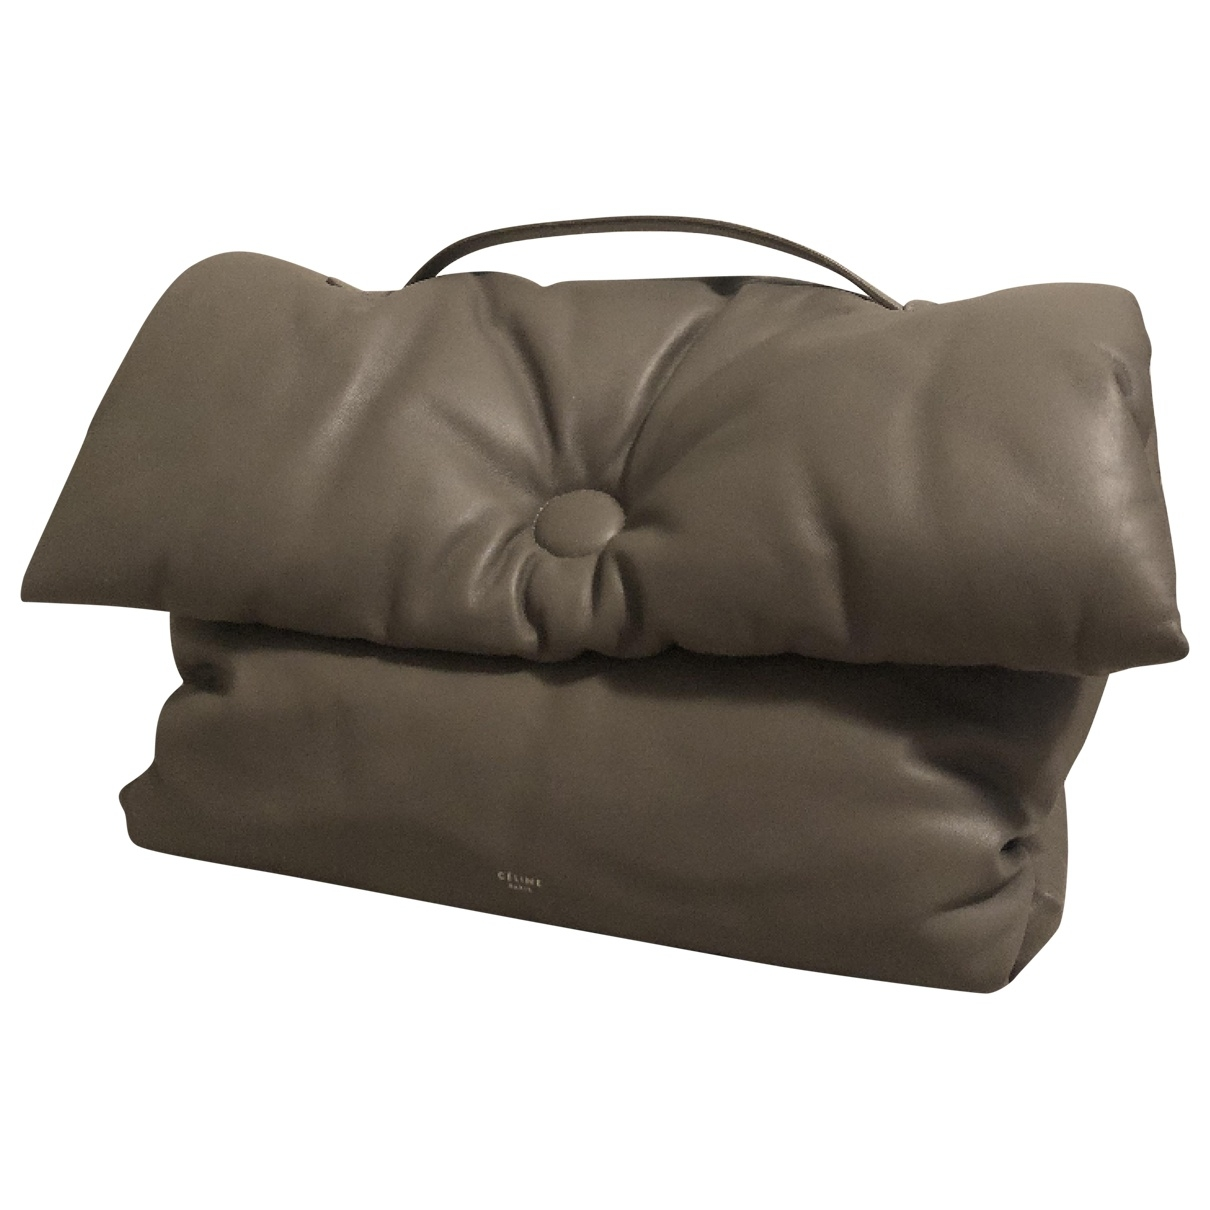 Celine Pillow Bag Grey Leather handbag for Women \N